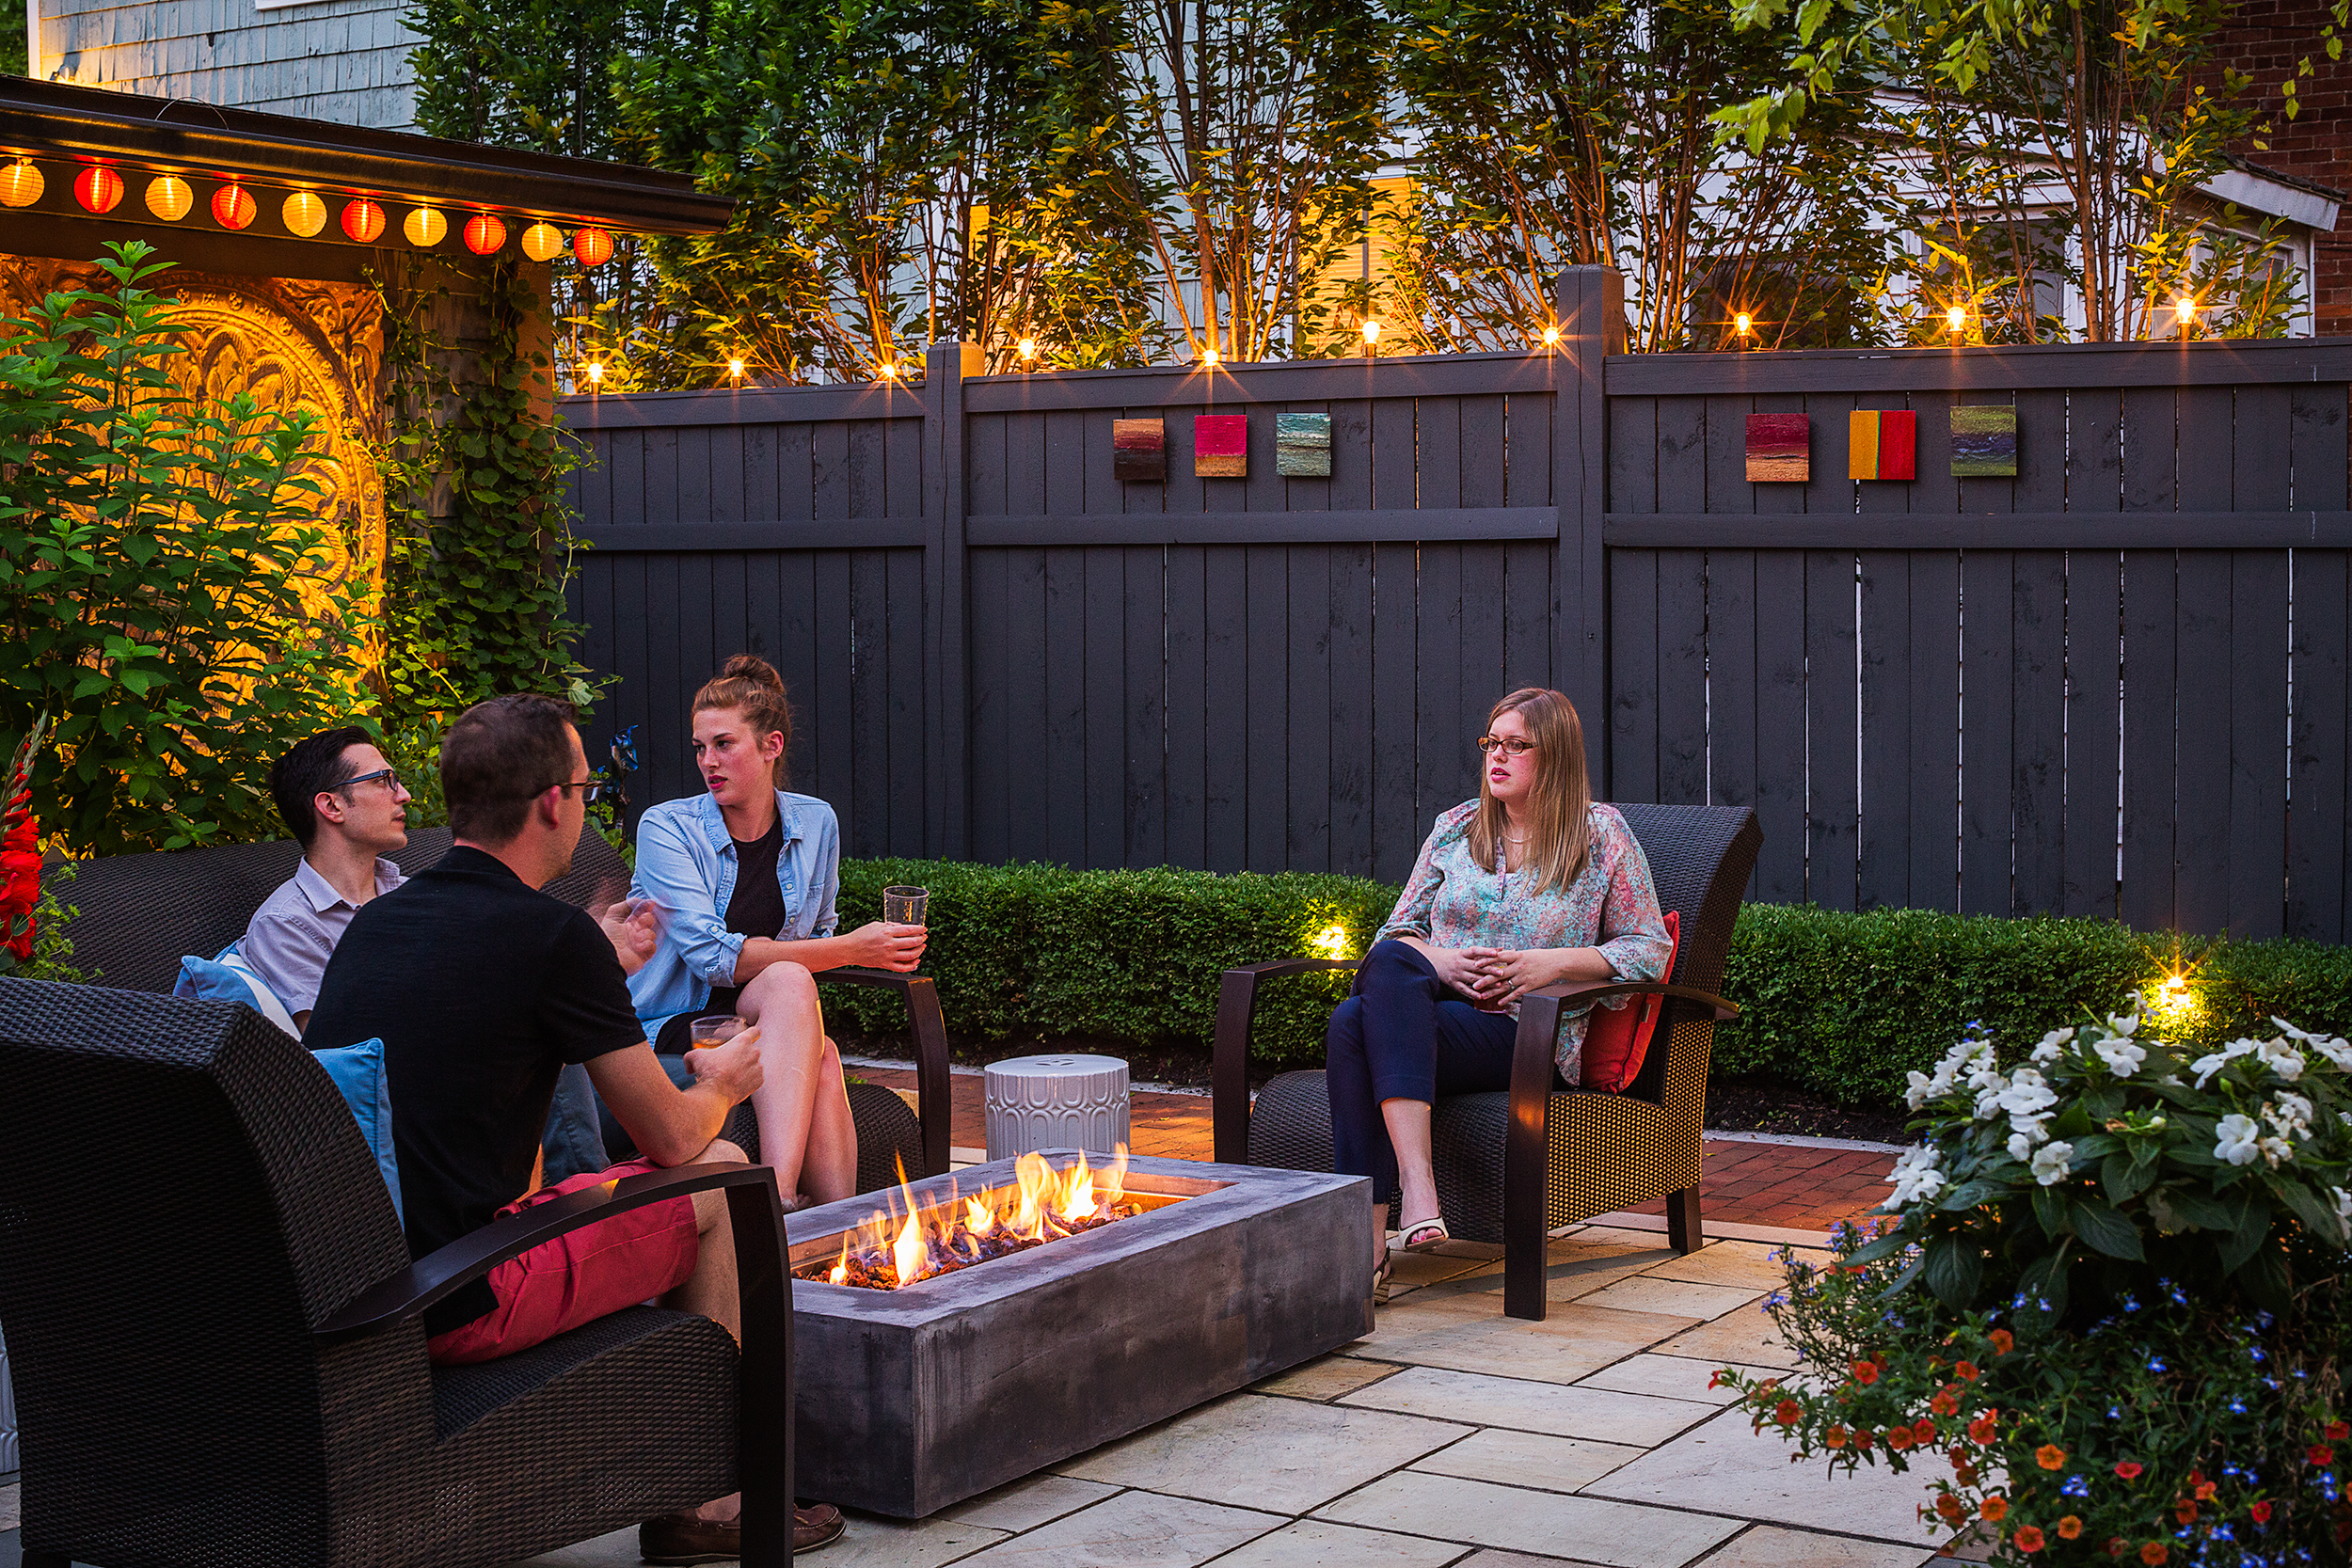 Accent lighting along fence, garage and landscaped areas; Friends sitting by burning fire pit at patio against illuminated fence